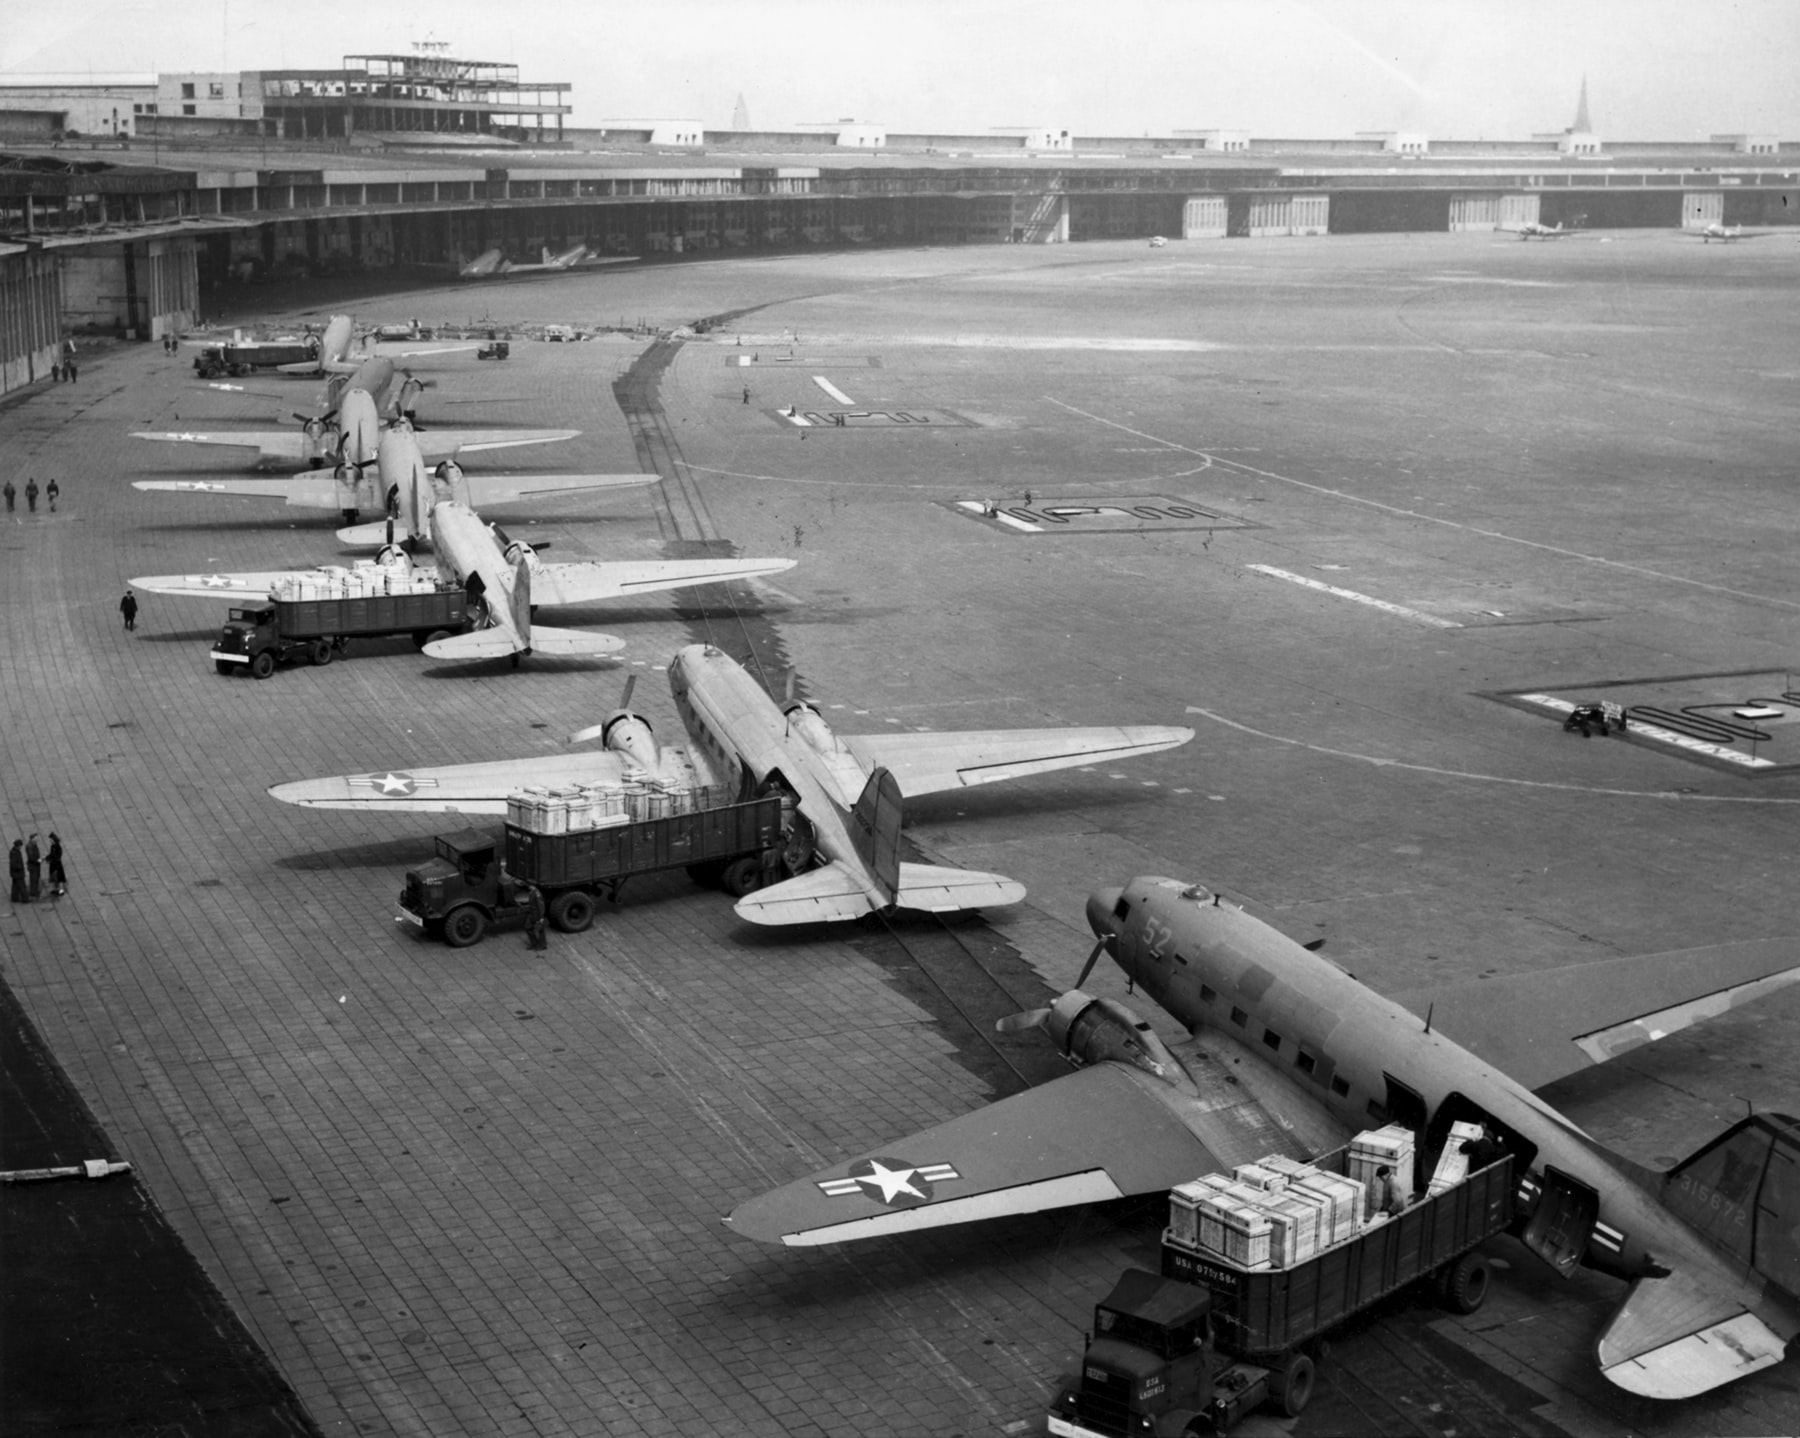 Douglas C-47s unloading supplies at Tempelhof, Berlin, in 1948, during Berlin Airlift. Phot, US Navy National Museum of Naval Aviation. Dispatches: Breitling's DC-3 To Become Oldest Aircraft Ever To Circle The Earth Dispatches: Breitling's DC-3 To Become Oldest Aircraft Ever To Circle The Earth C 47s at Tempelhof Airport Berlin 1948